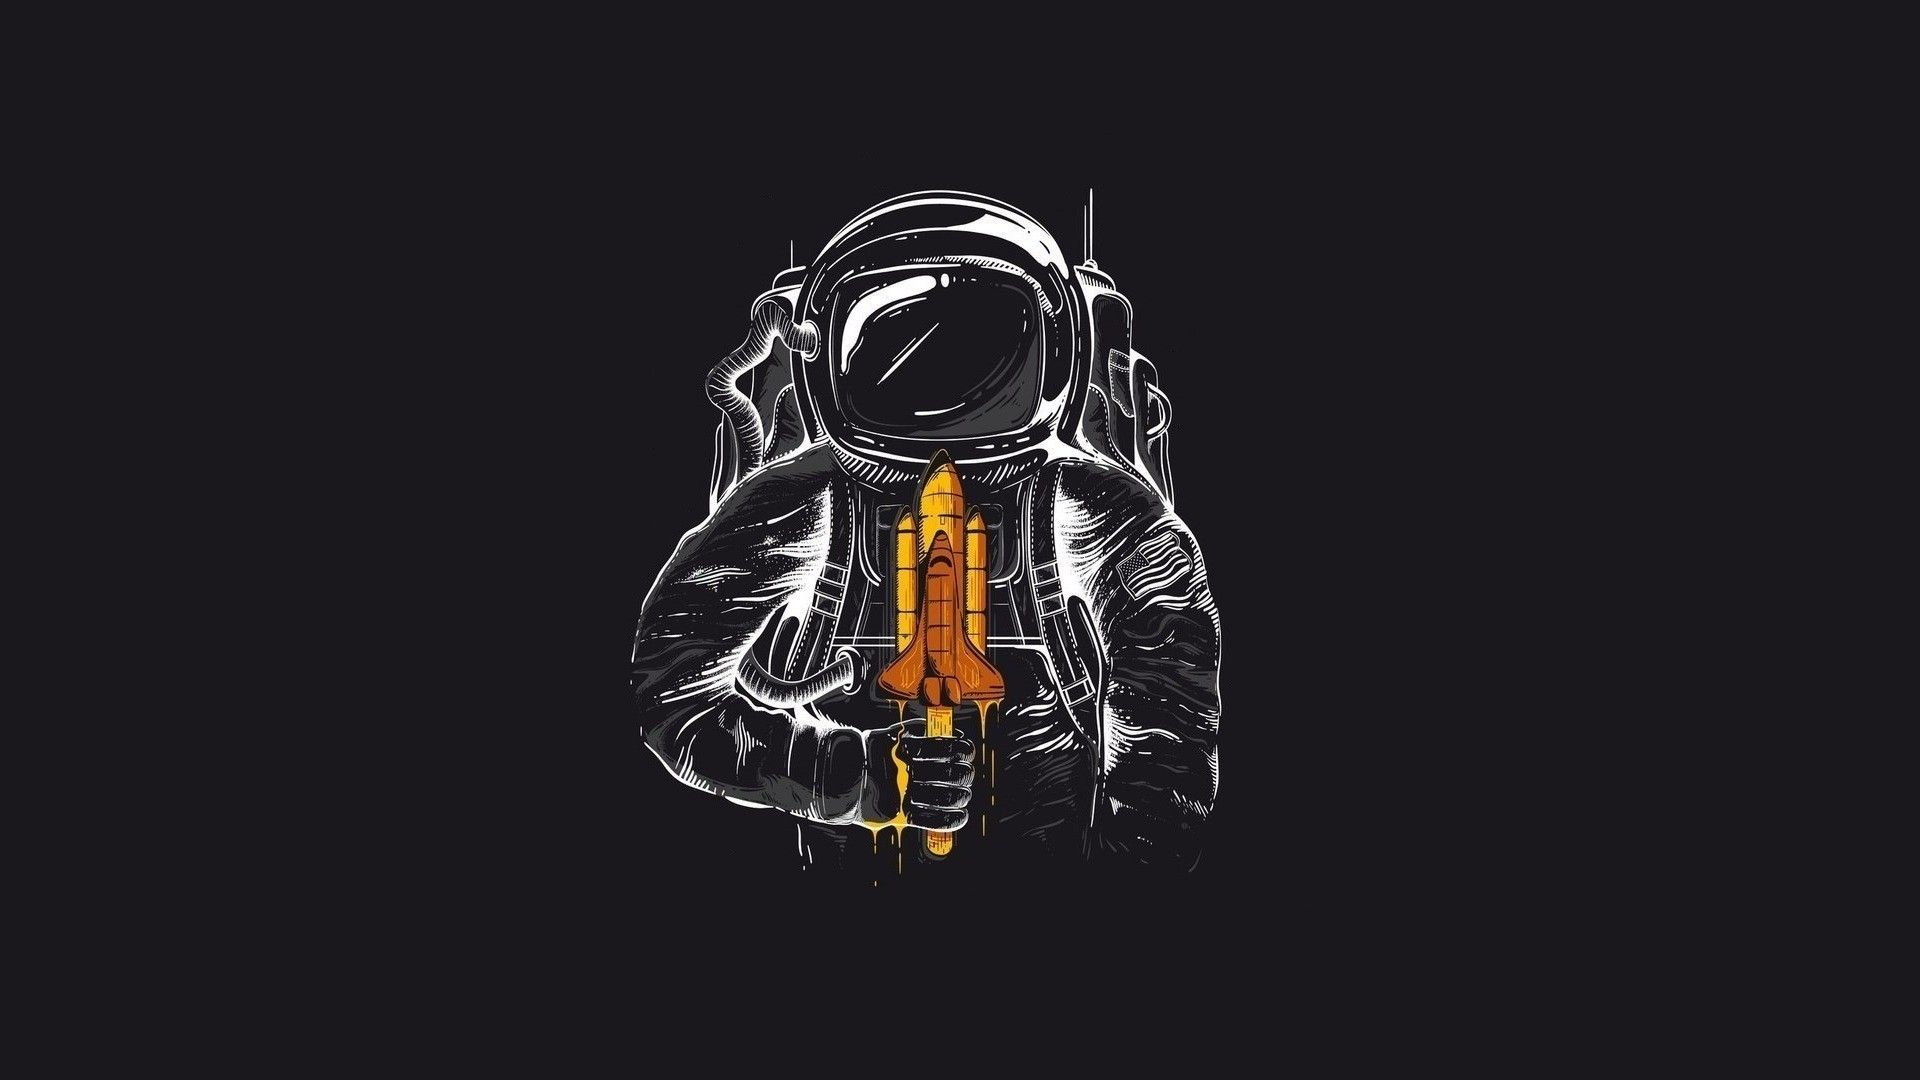 General 1920x1080 astronaut space simple background